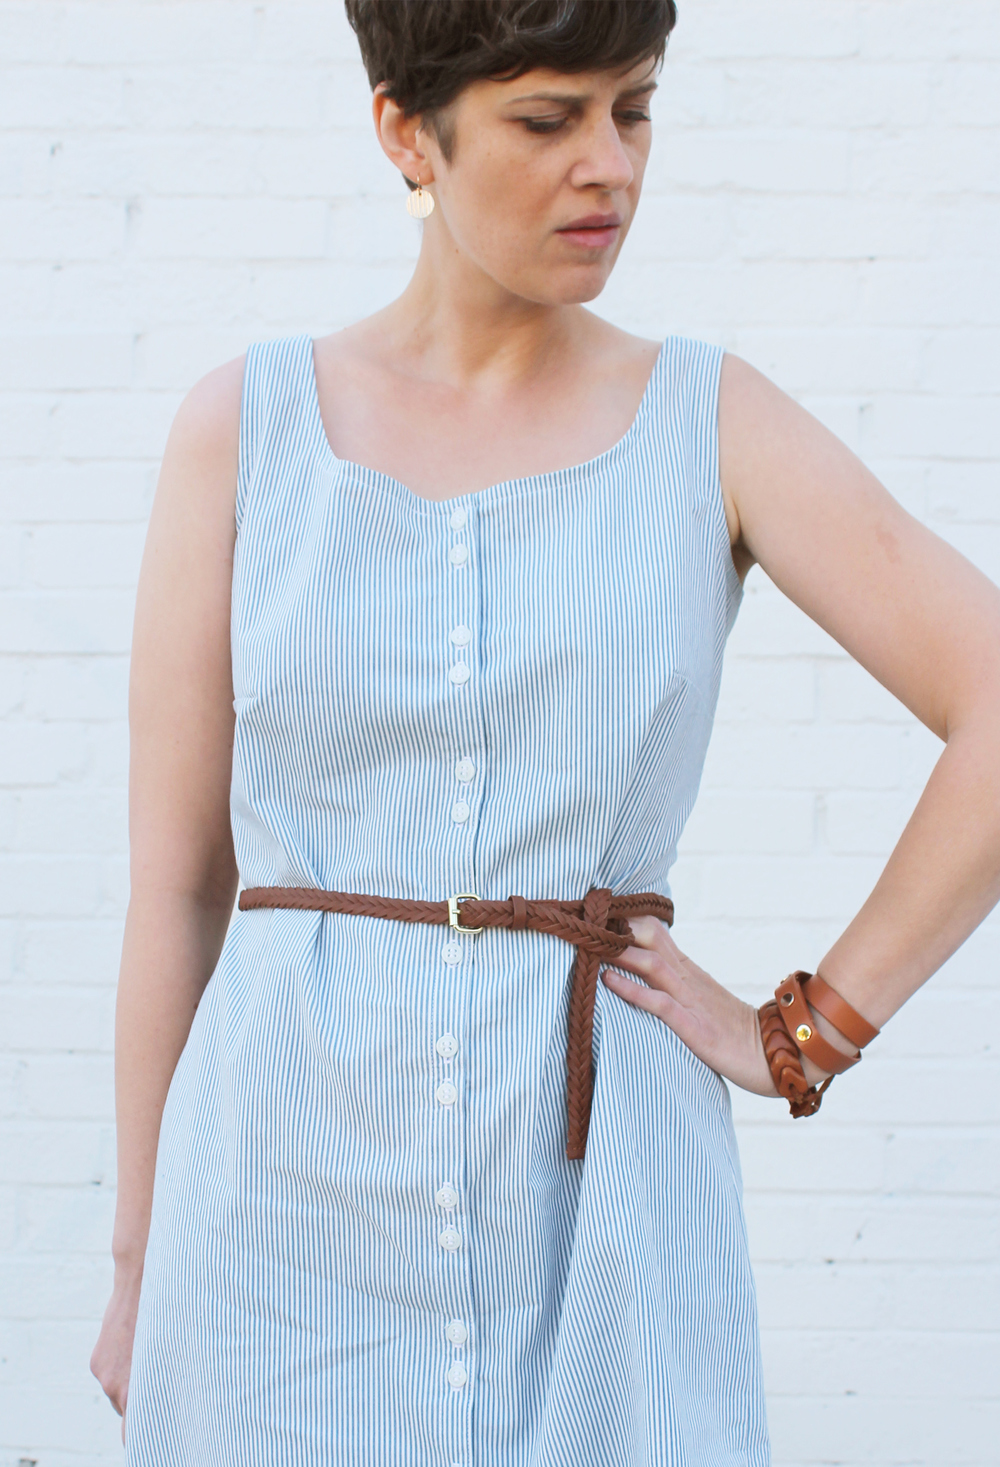 DIY Sleeveless Shirtdress | Sew DIY